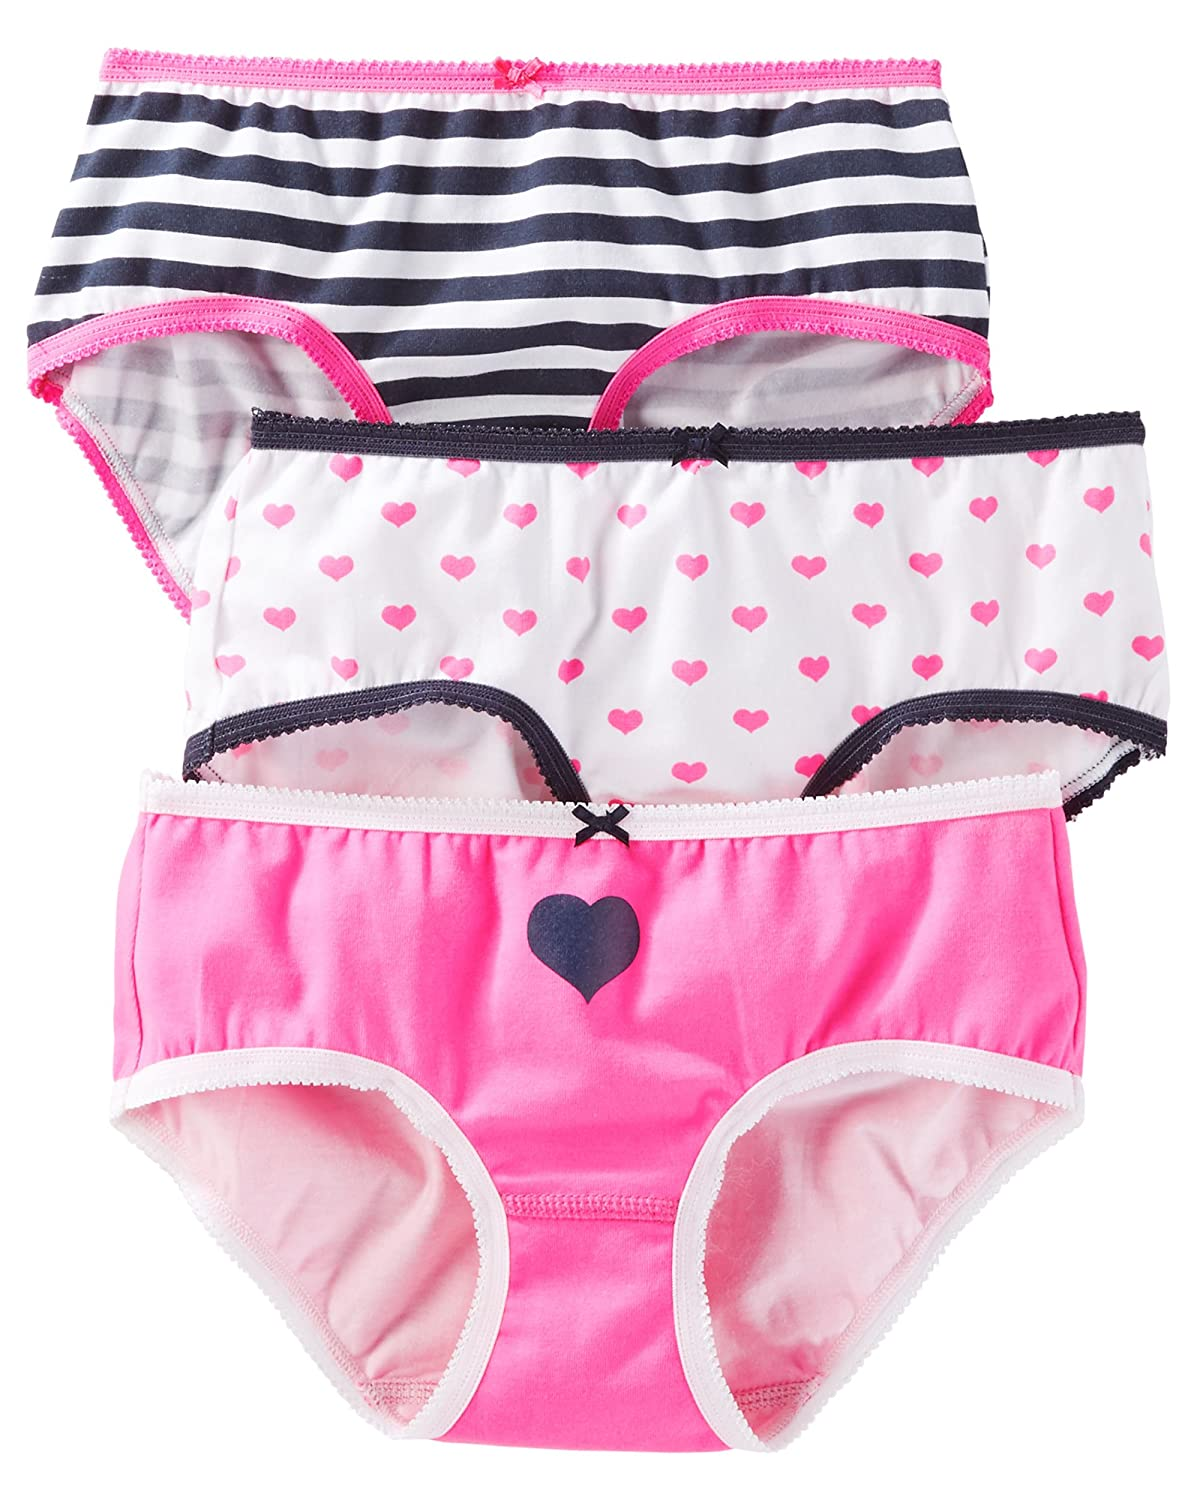 Carter's Little Girls' 3 Pack Panties (Toddler/Kid) - Geo Prints D31G022